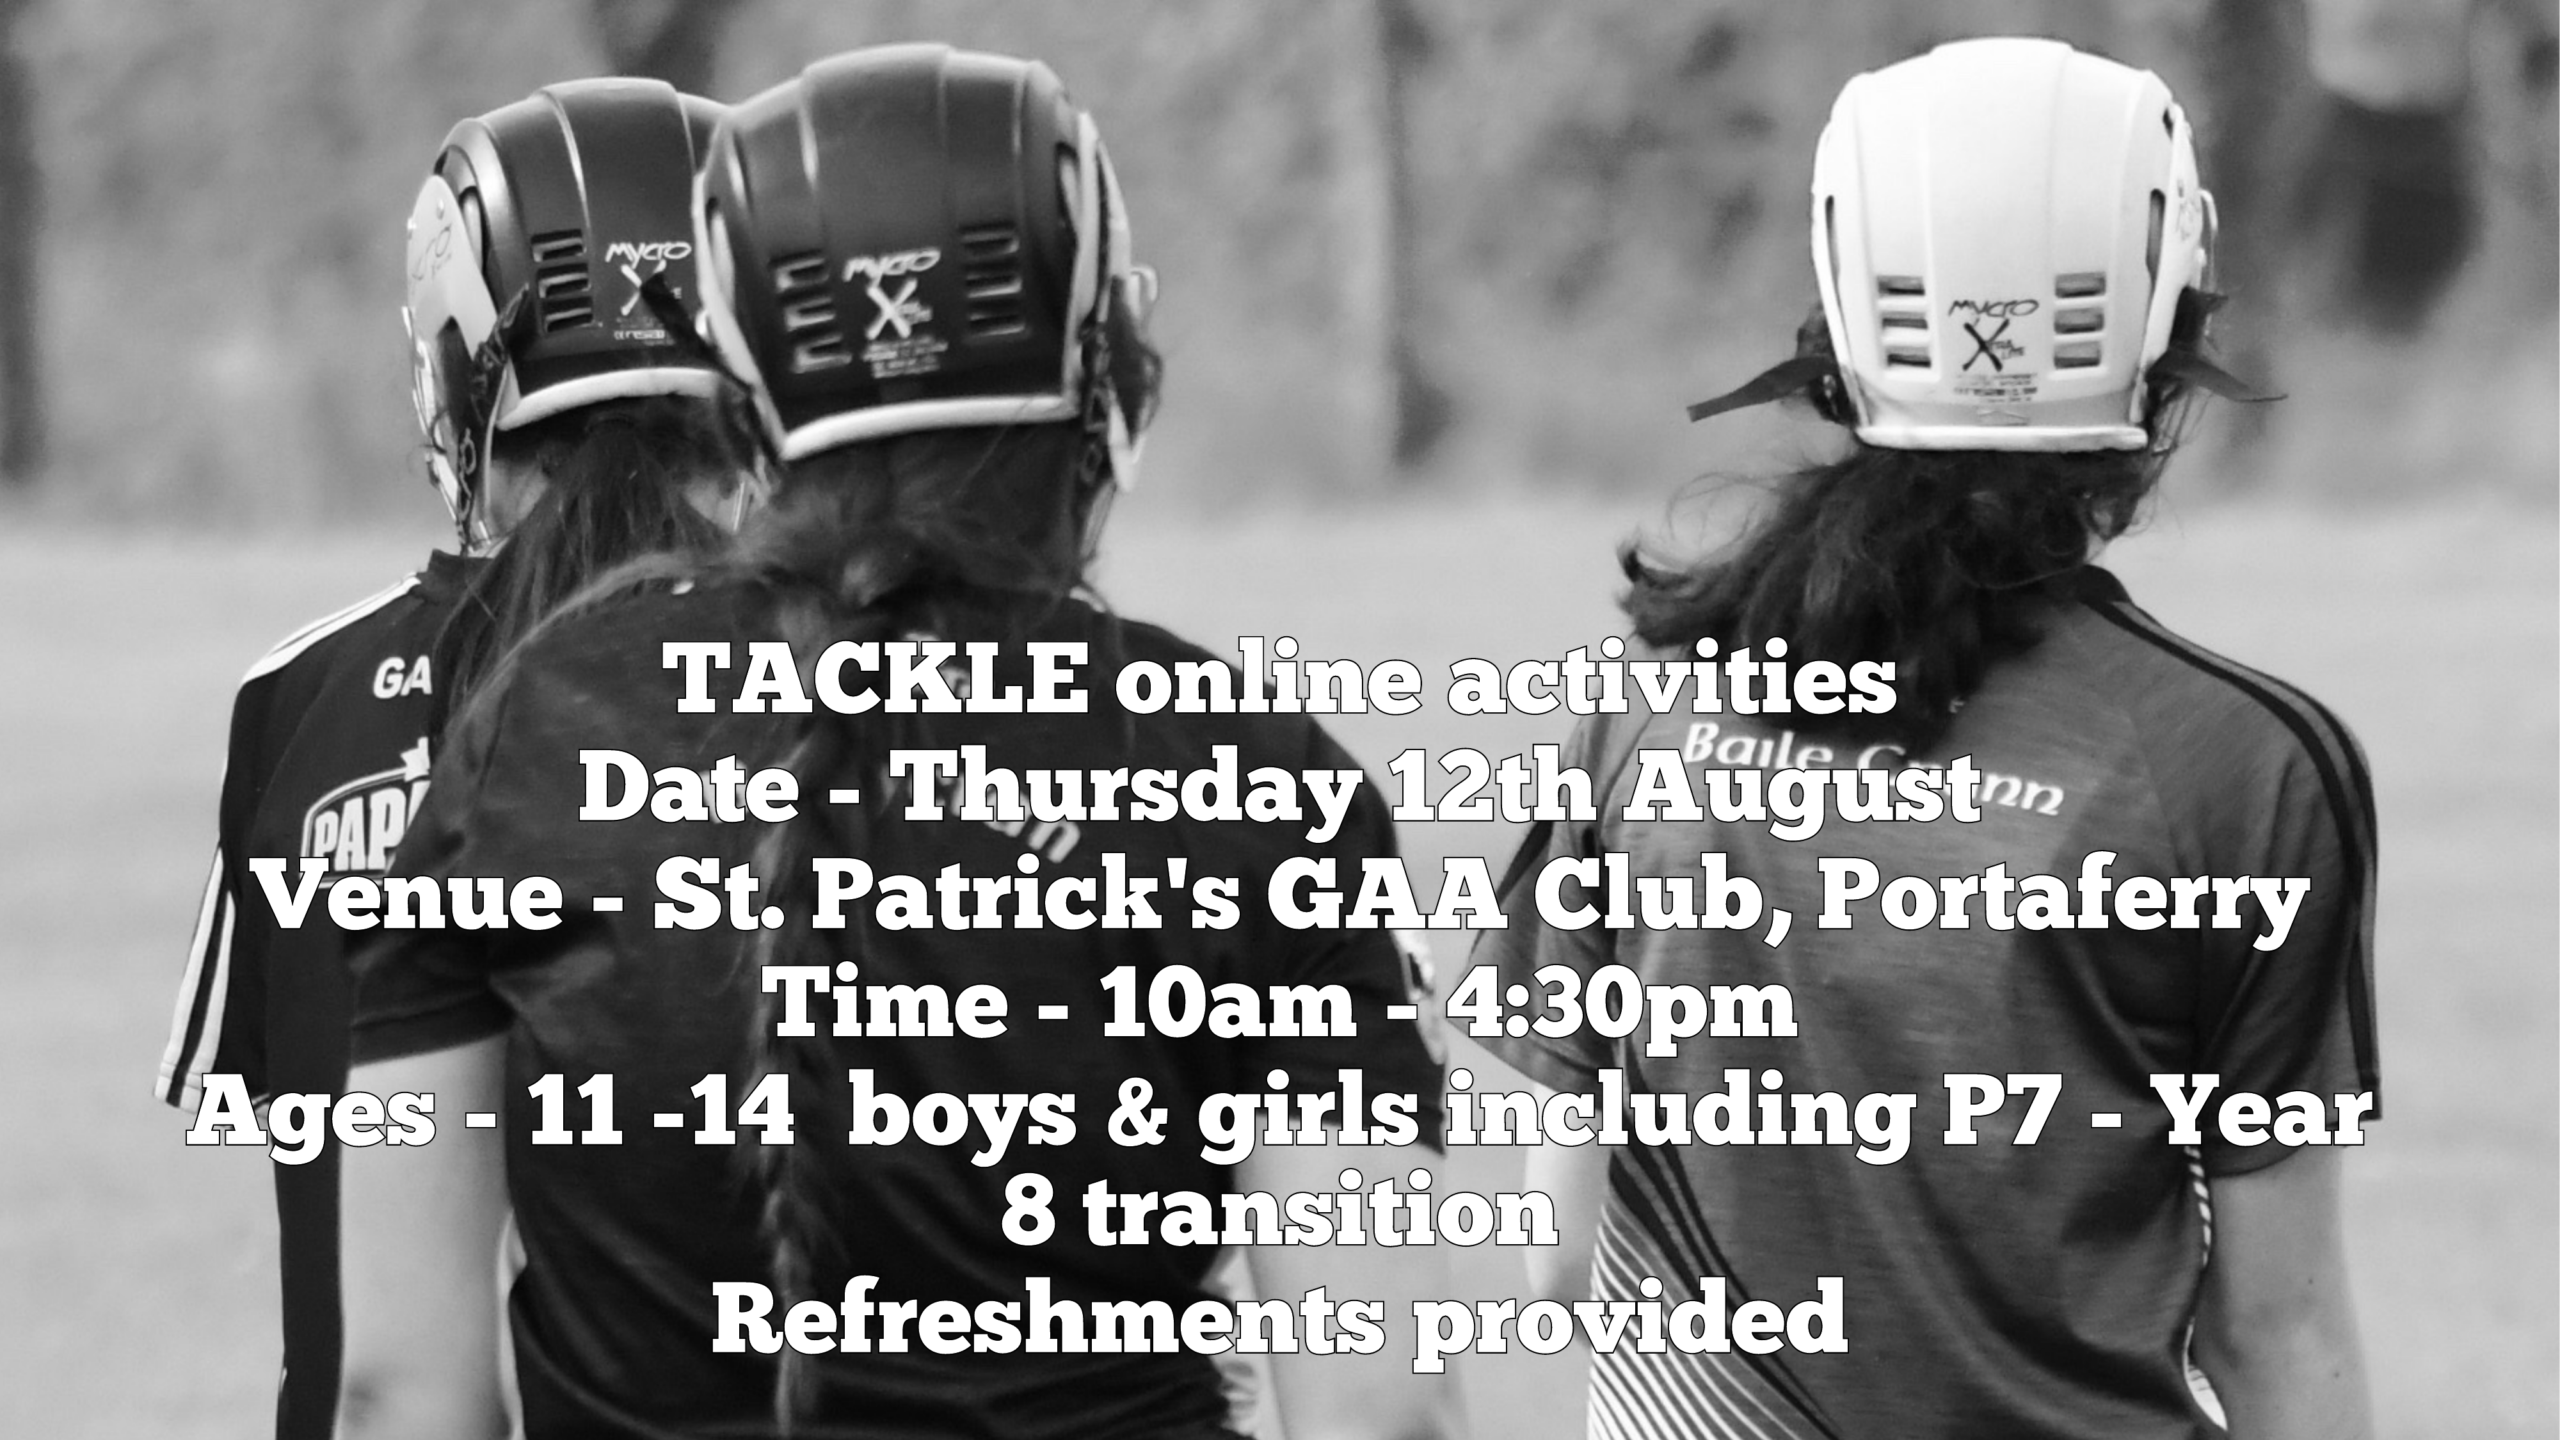 TACKLE is the theme for a combined juveniles Ards Club event